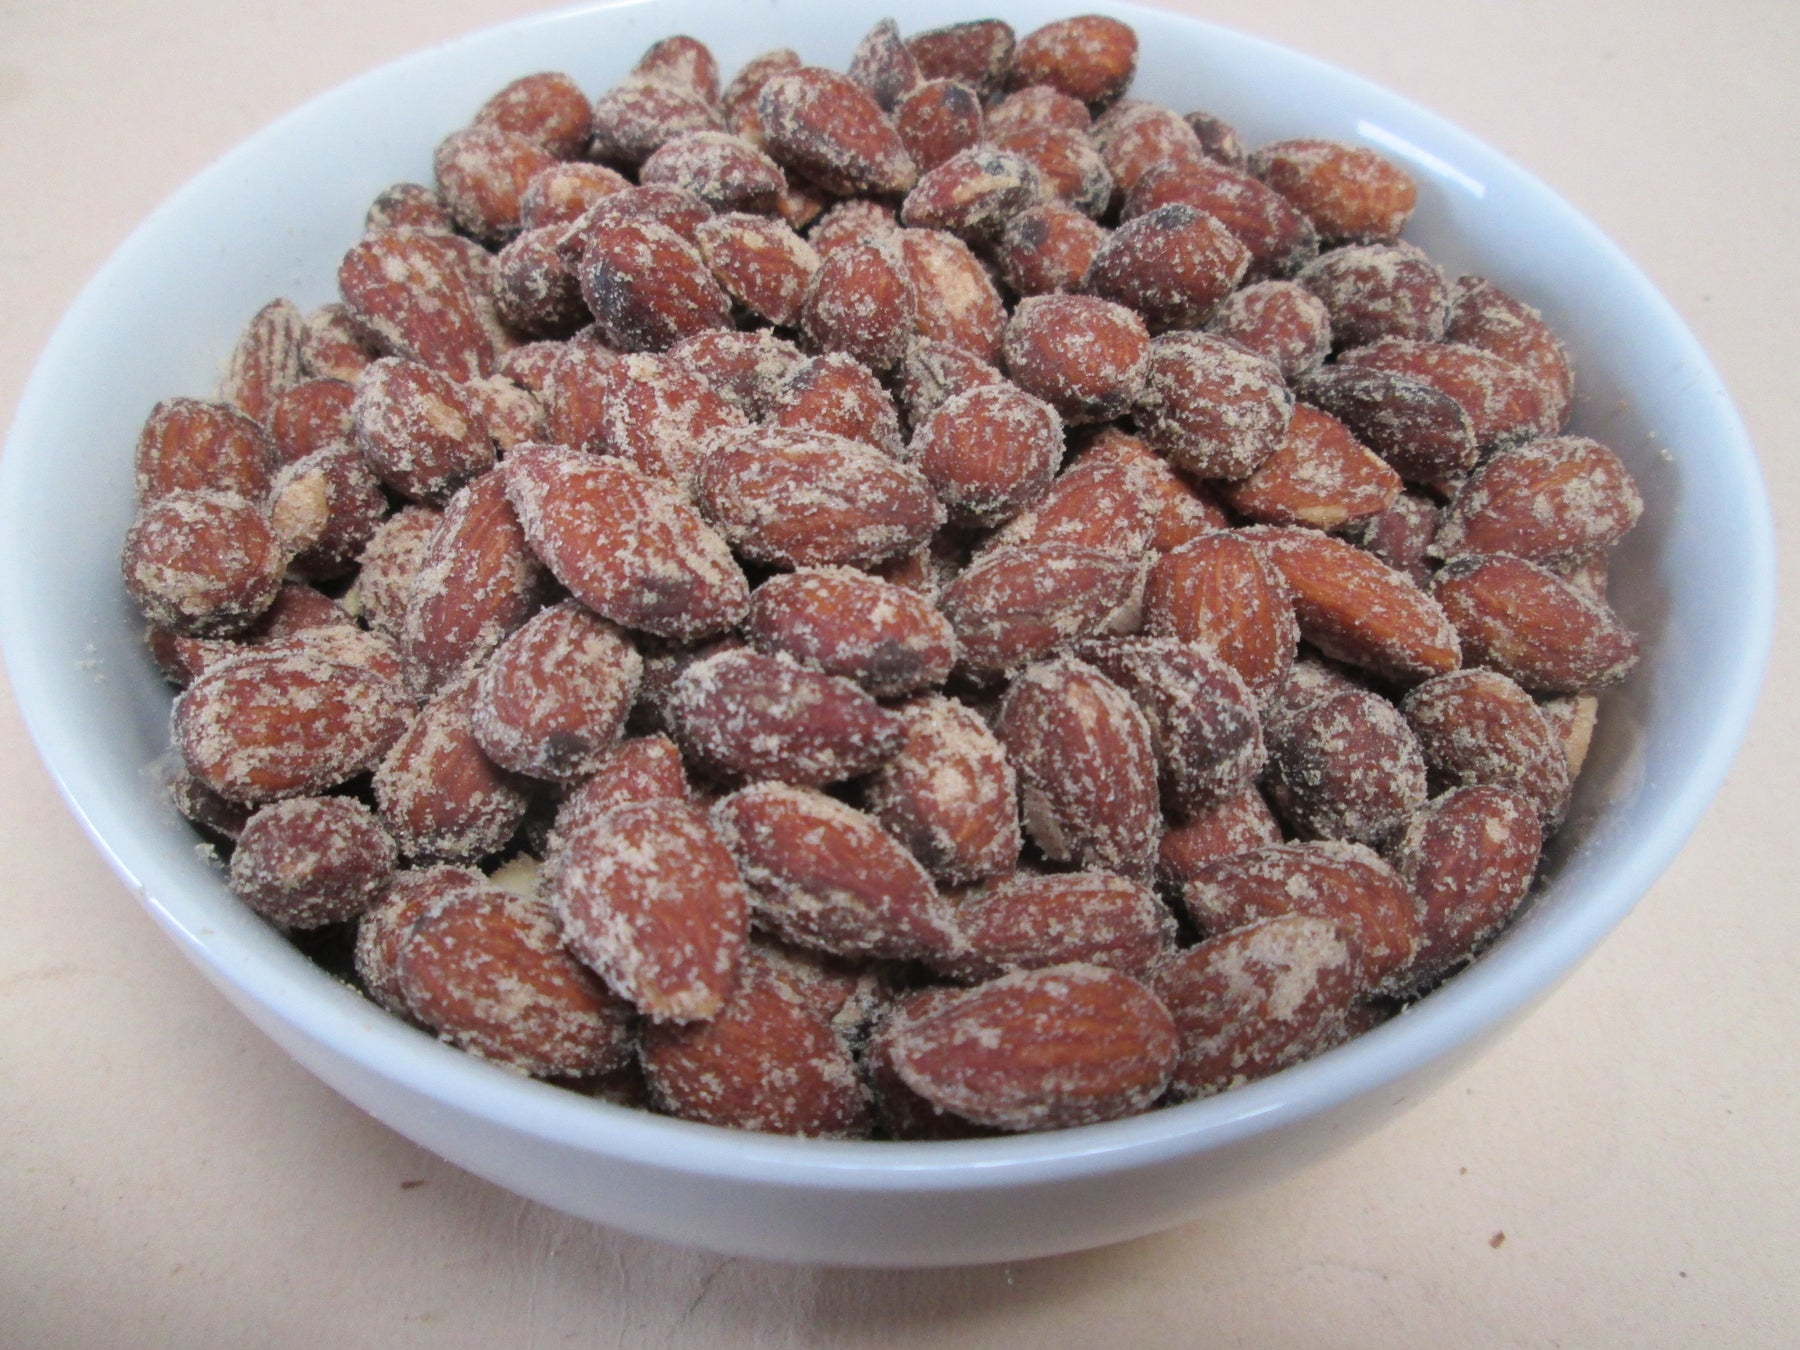 Smoked & Roasted Almonds, 25 lbs / case